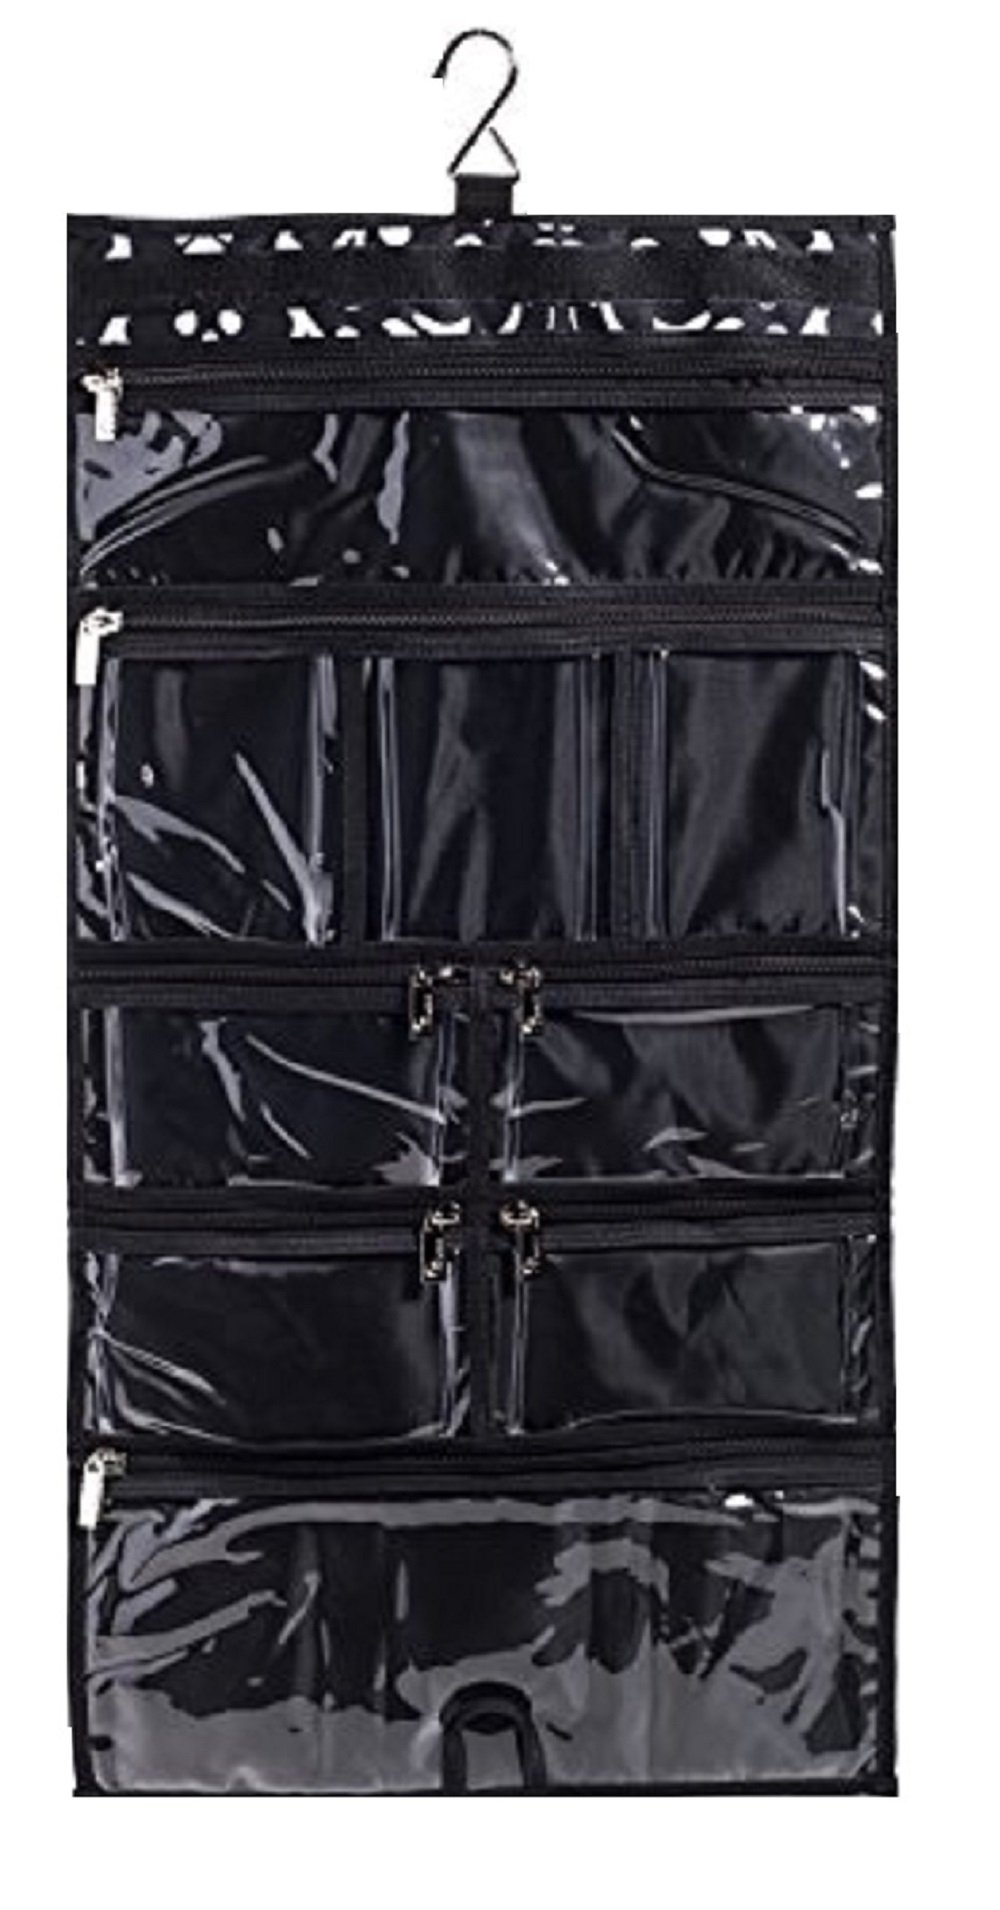 Hanging Travel Organizer, 9 Large Clear Zipper Pockets for Makeup, Toiletry, Cosmetics, Underwear, Jewelry, Lingerie Holder Bag for Women - Closet, Wall or Door (Paisley)